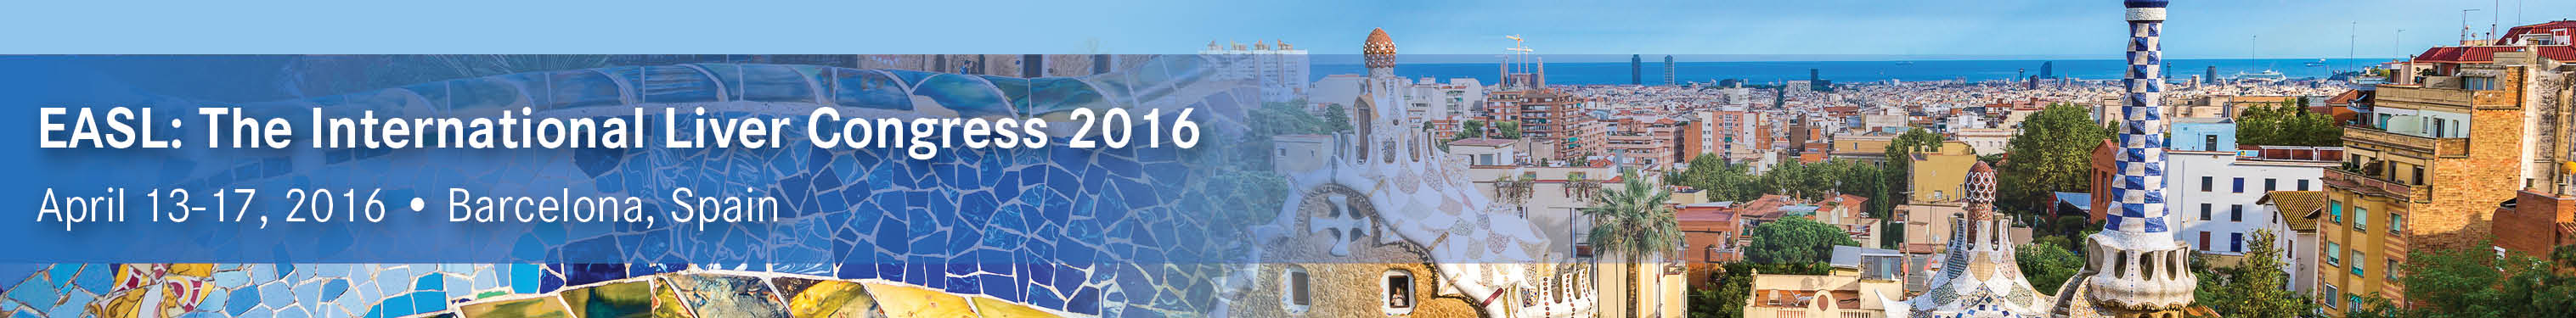 The International Liver Congress 2016